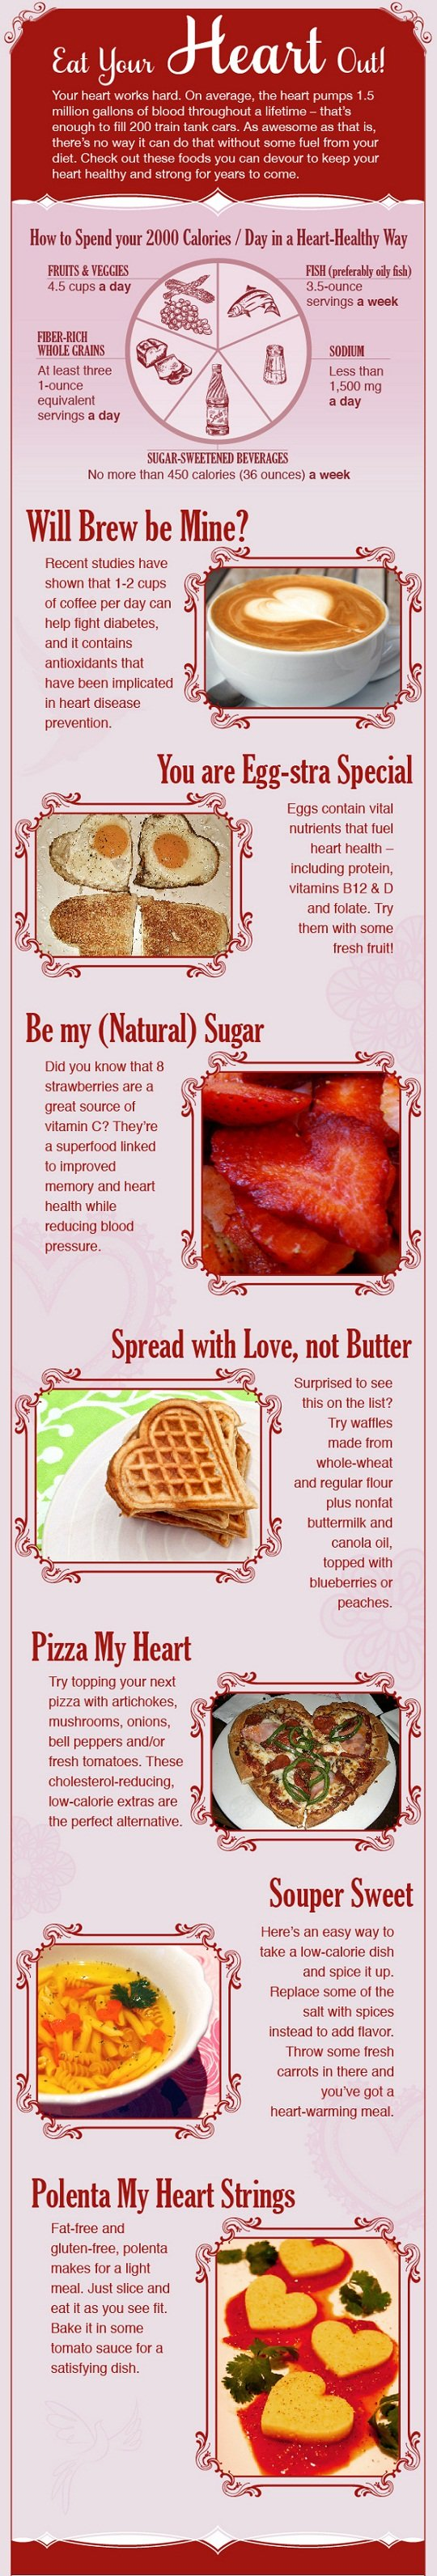 Healthy Eating Tips #Infographic